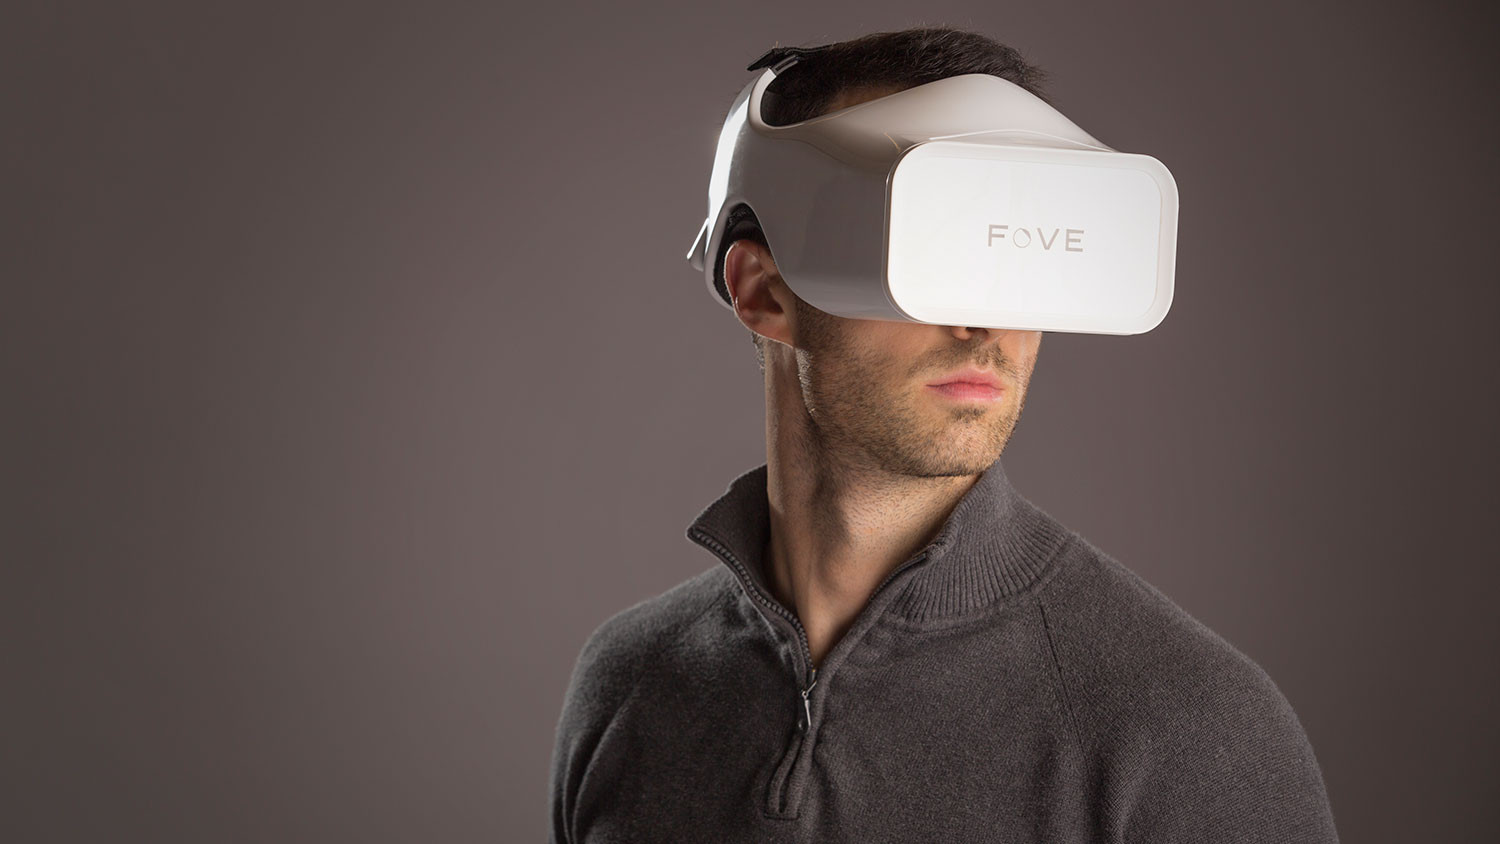 Fove tweaks its VR headset's ergonomics, now one step closer to final version